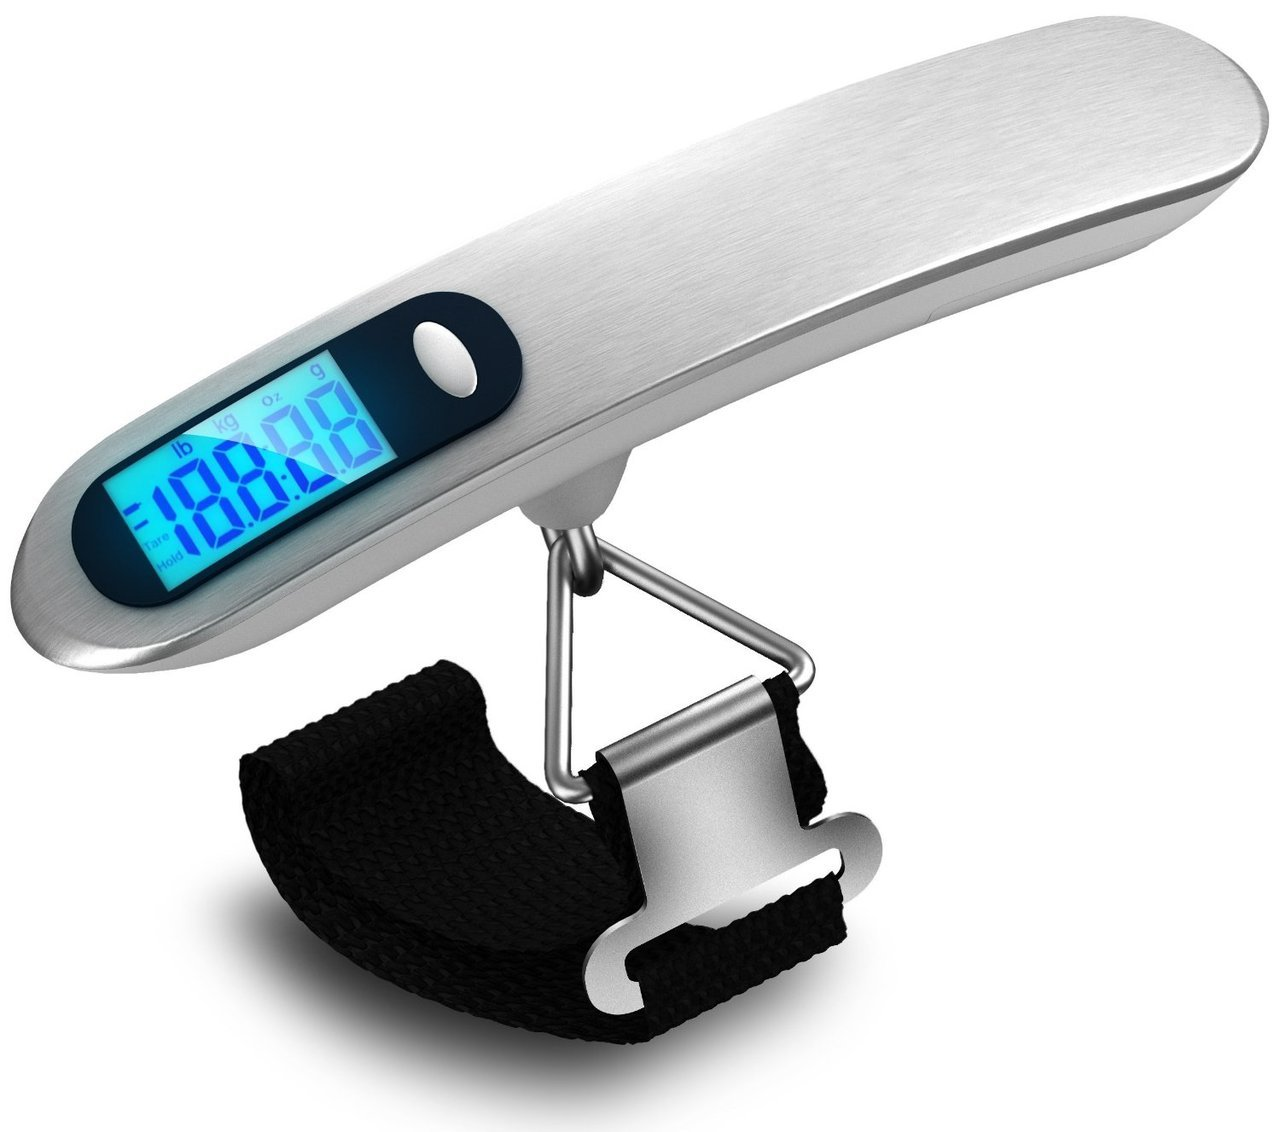 "aGreatLife Luggage Scale ""aGreatLife"" is a Digital Portable Handheld Small Airline Travel Scale"